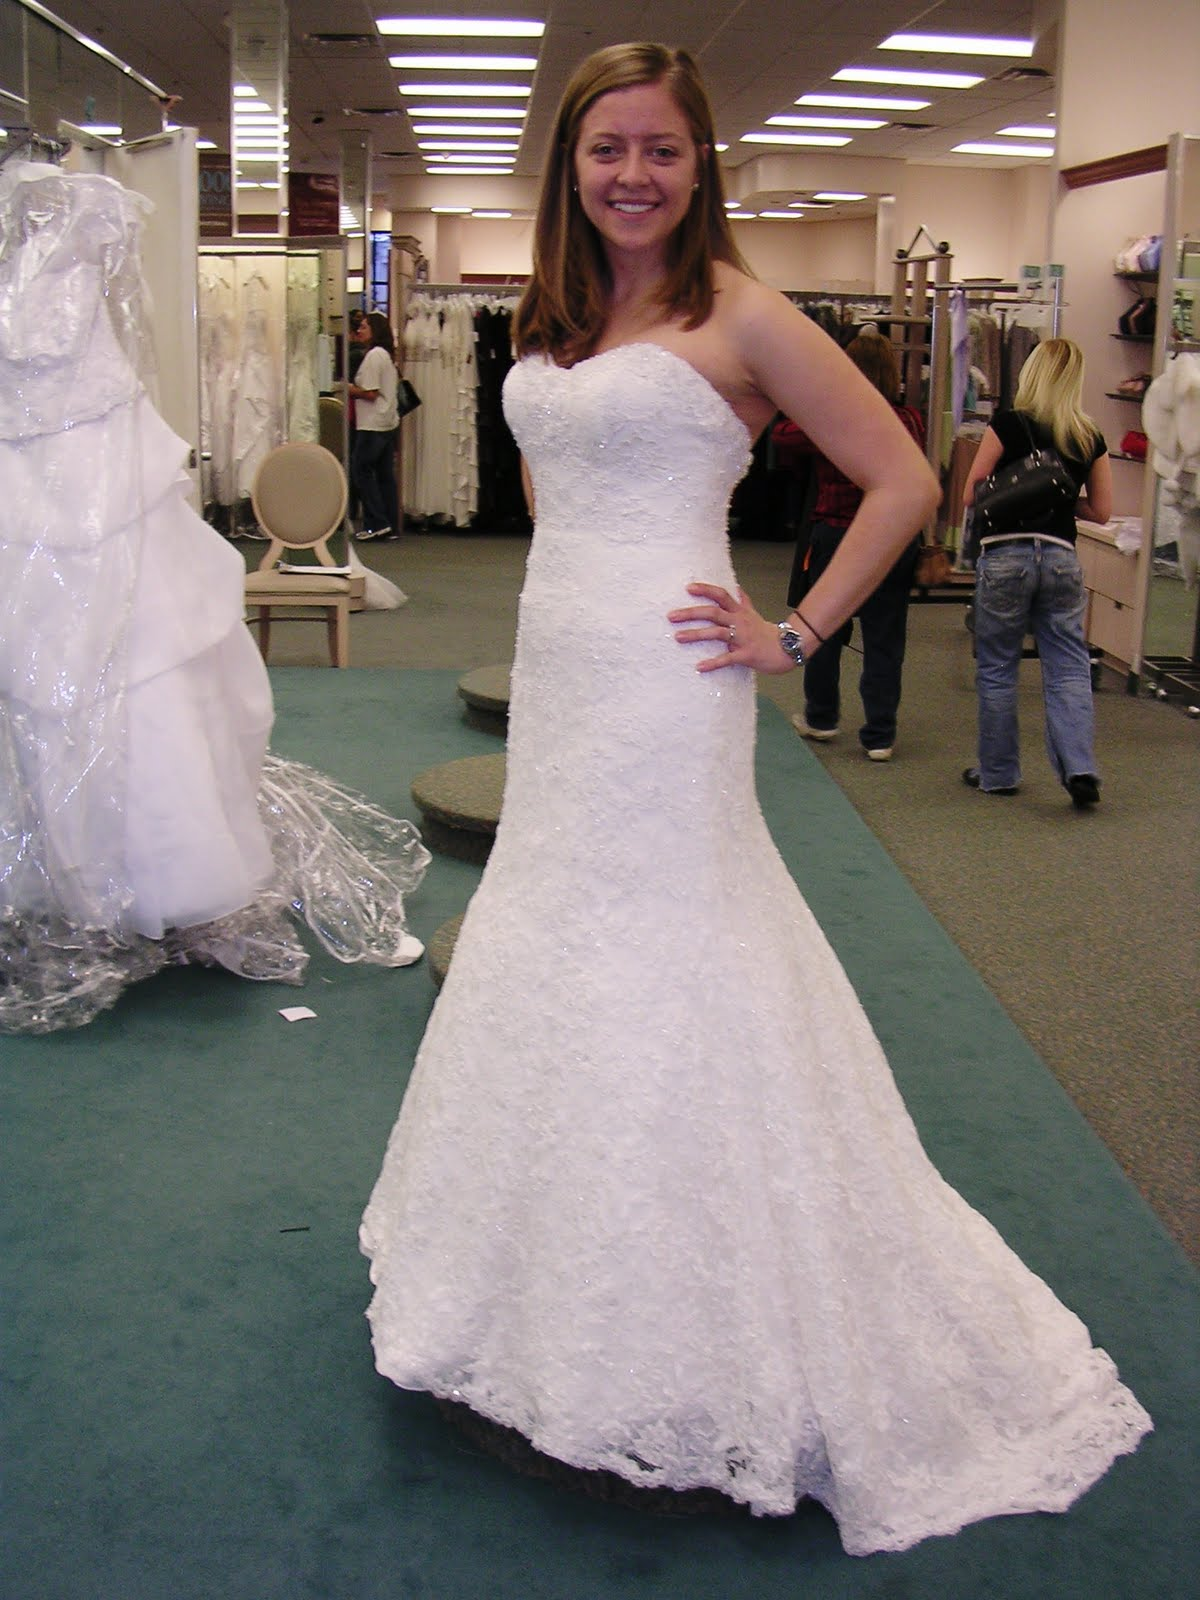 jcpenney outlet store wedding dresses jcpenney wedding dresses Jcpenney Outlet Store Wedding Dresses 21